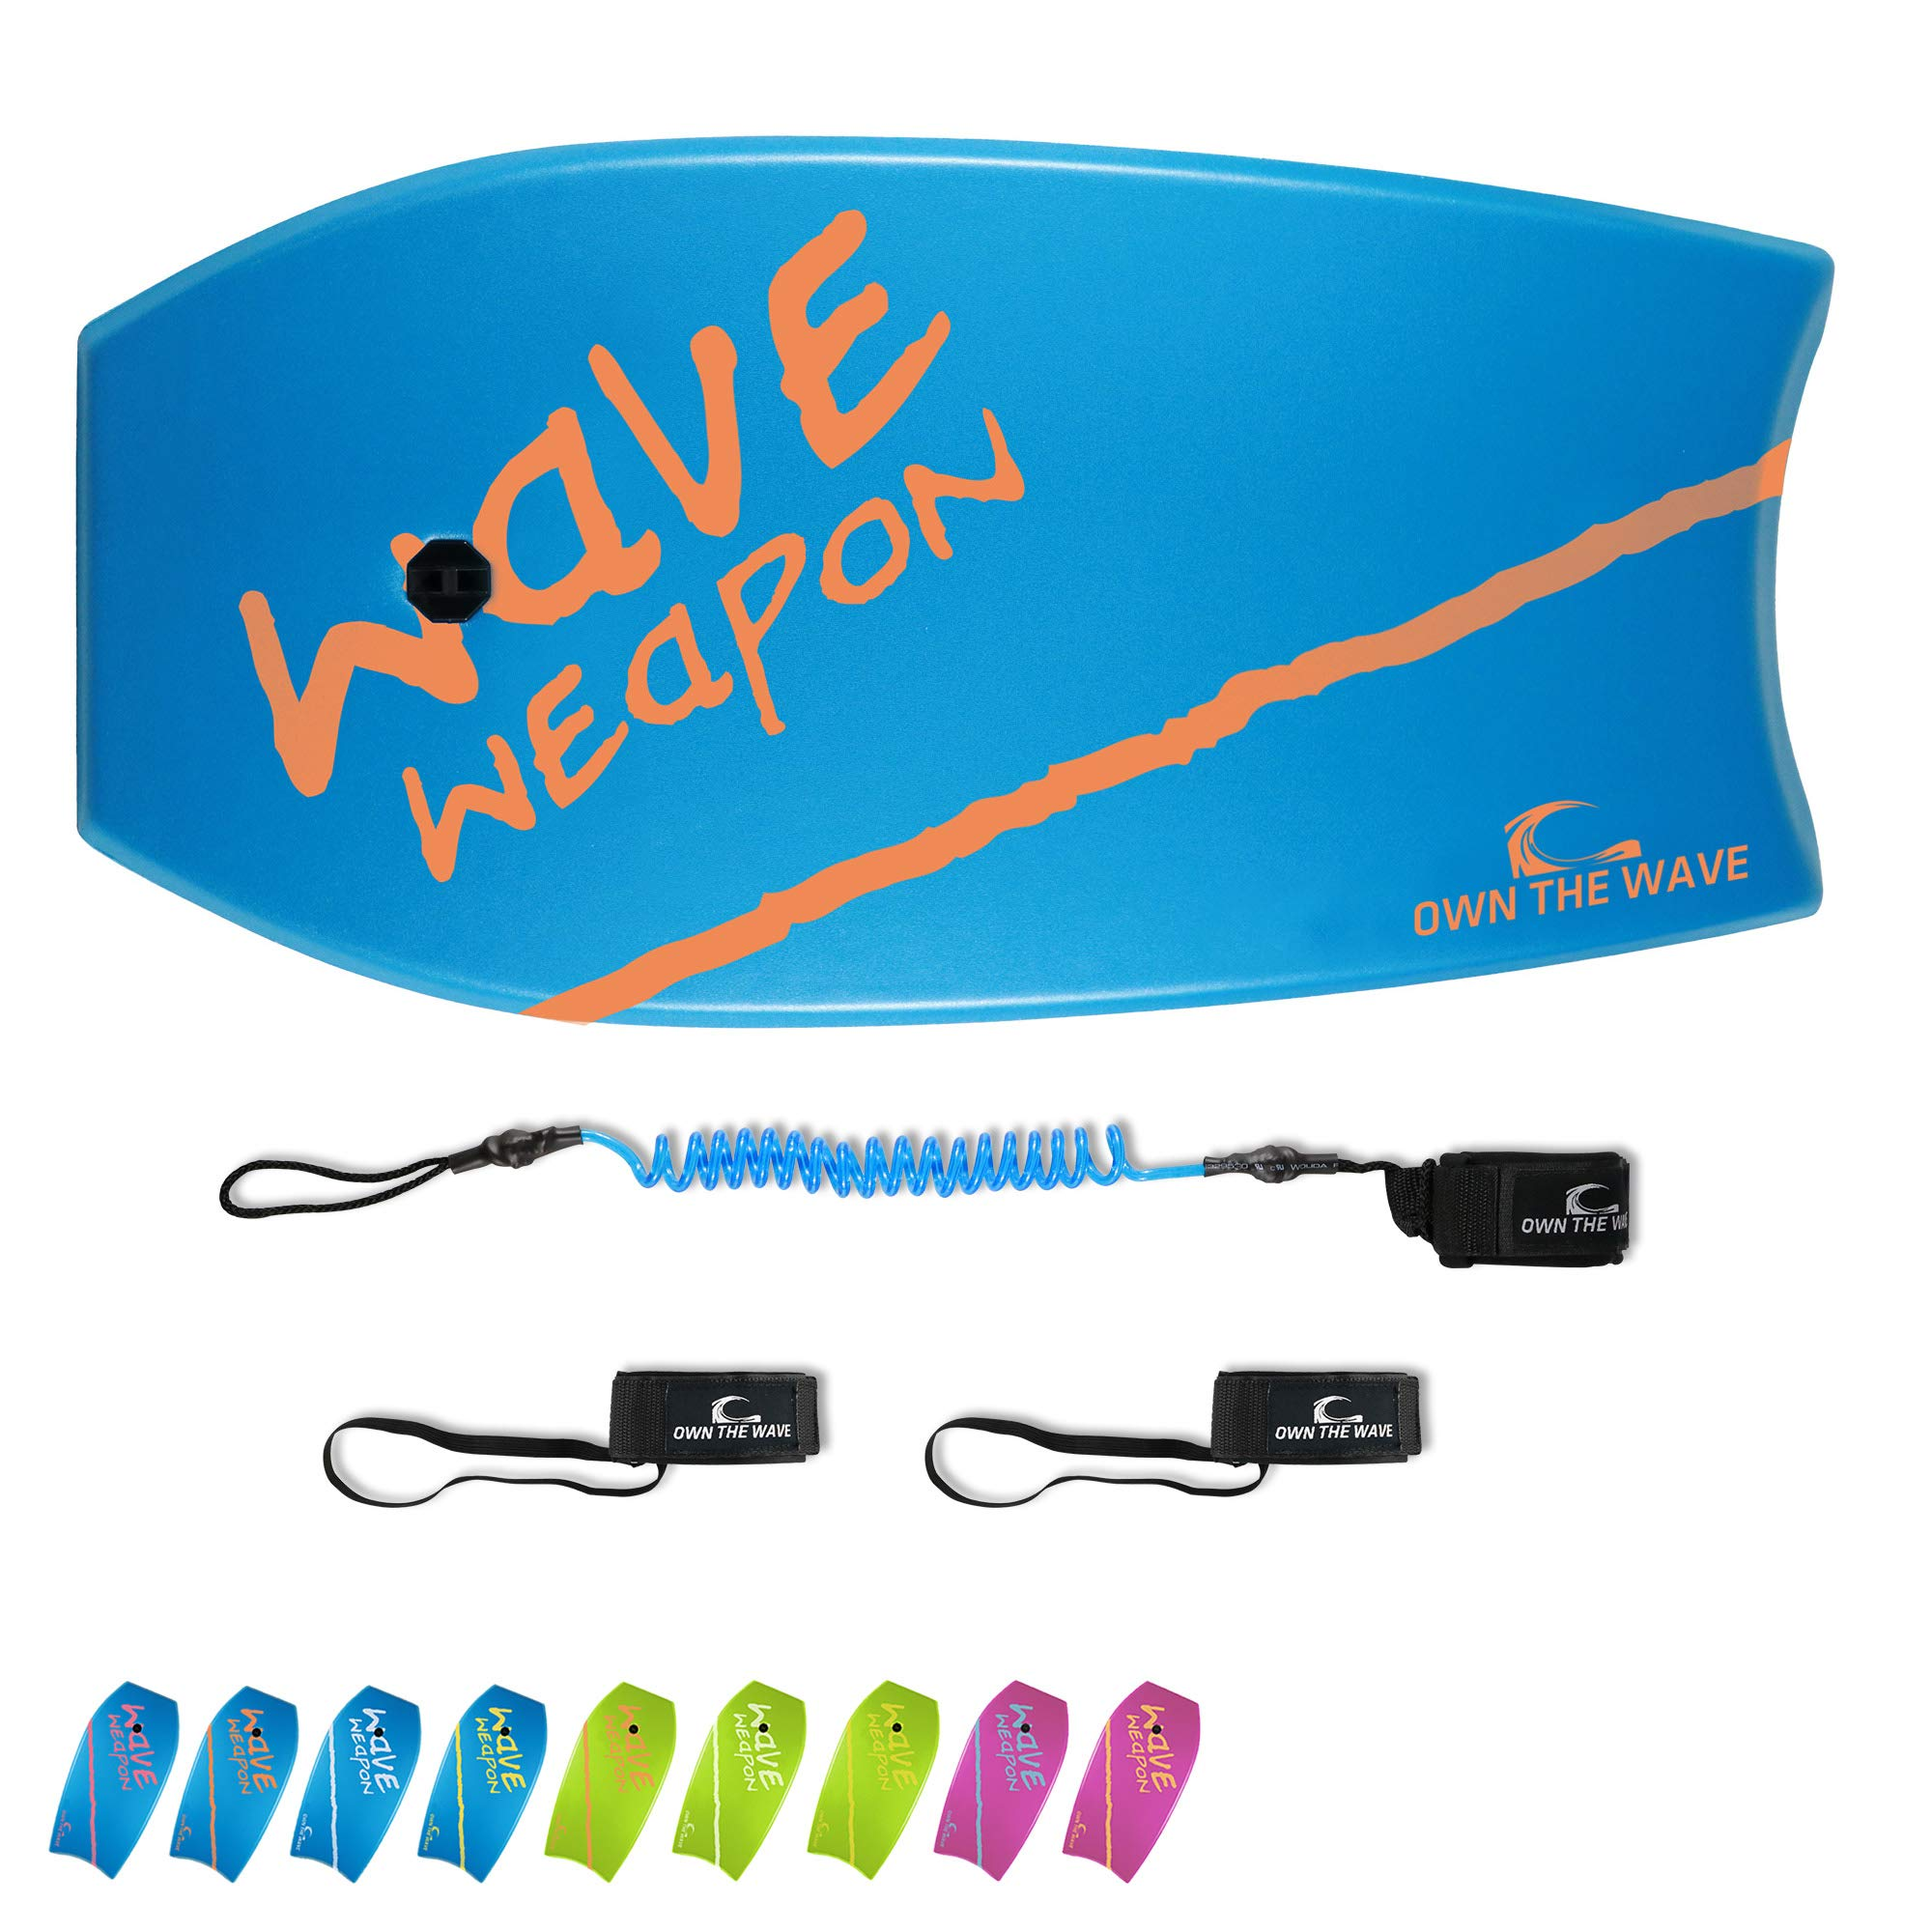 Own the Wave 41'' Body Board for Kids and Adults - HDPE Slick Bottom & EPS Core - Lightweight Body-Board for Beach and Surfing - Comes with Coiled Arm Leash and Fin Leash (Blue & Orange)